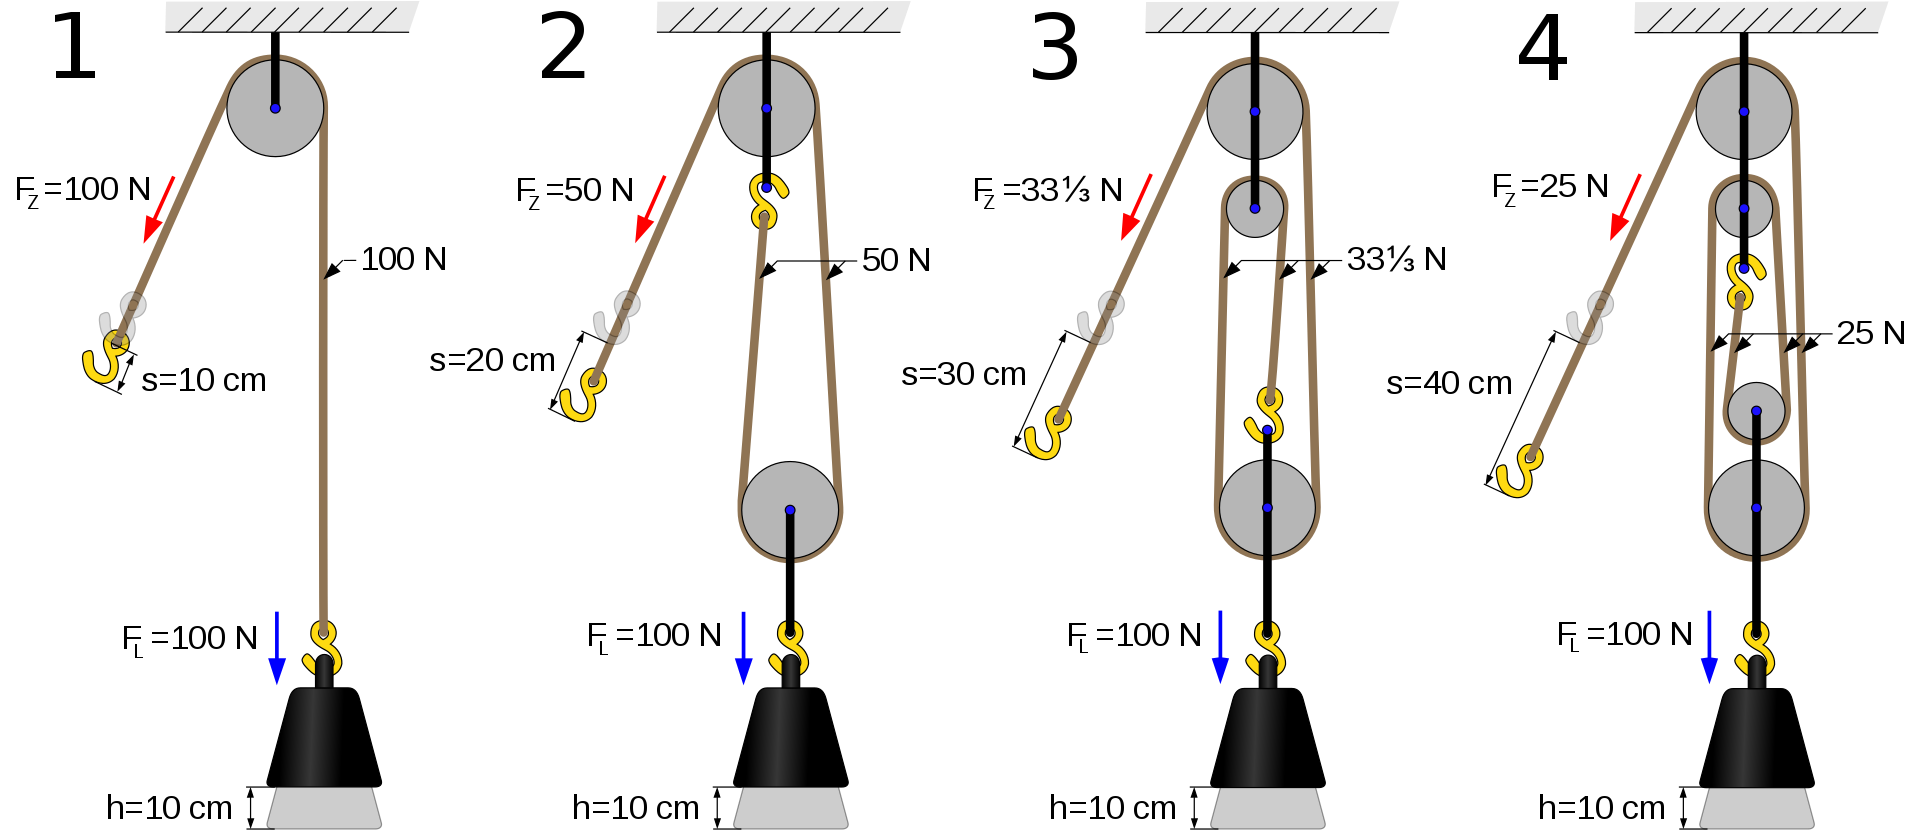 Examples Of Rope And Pulley Systems Illustrating